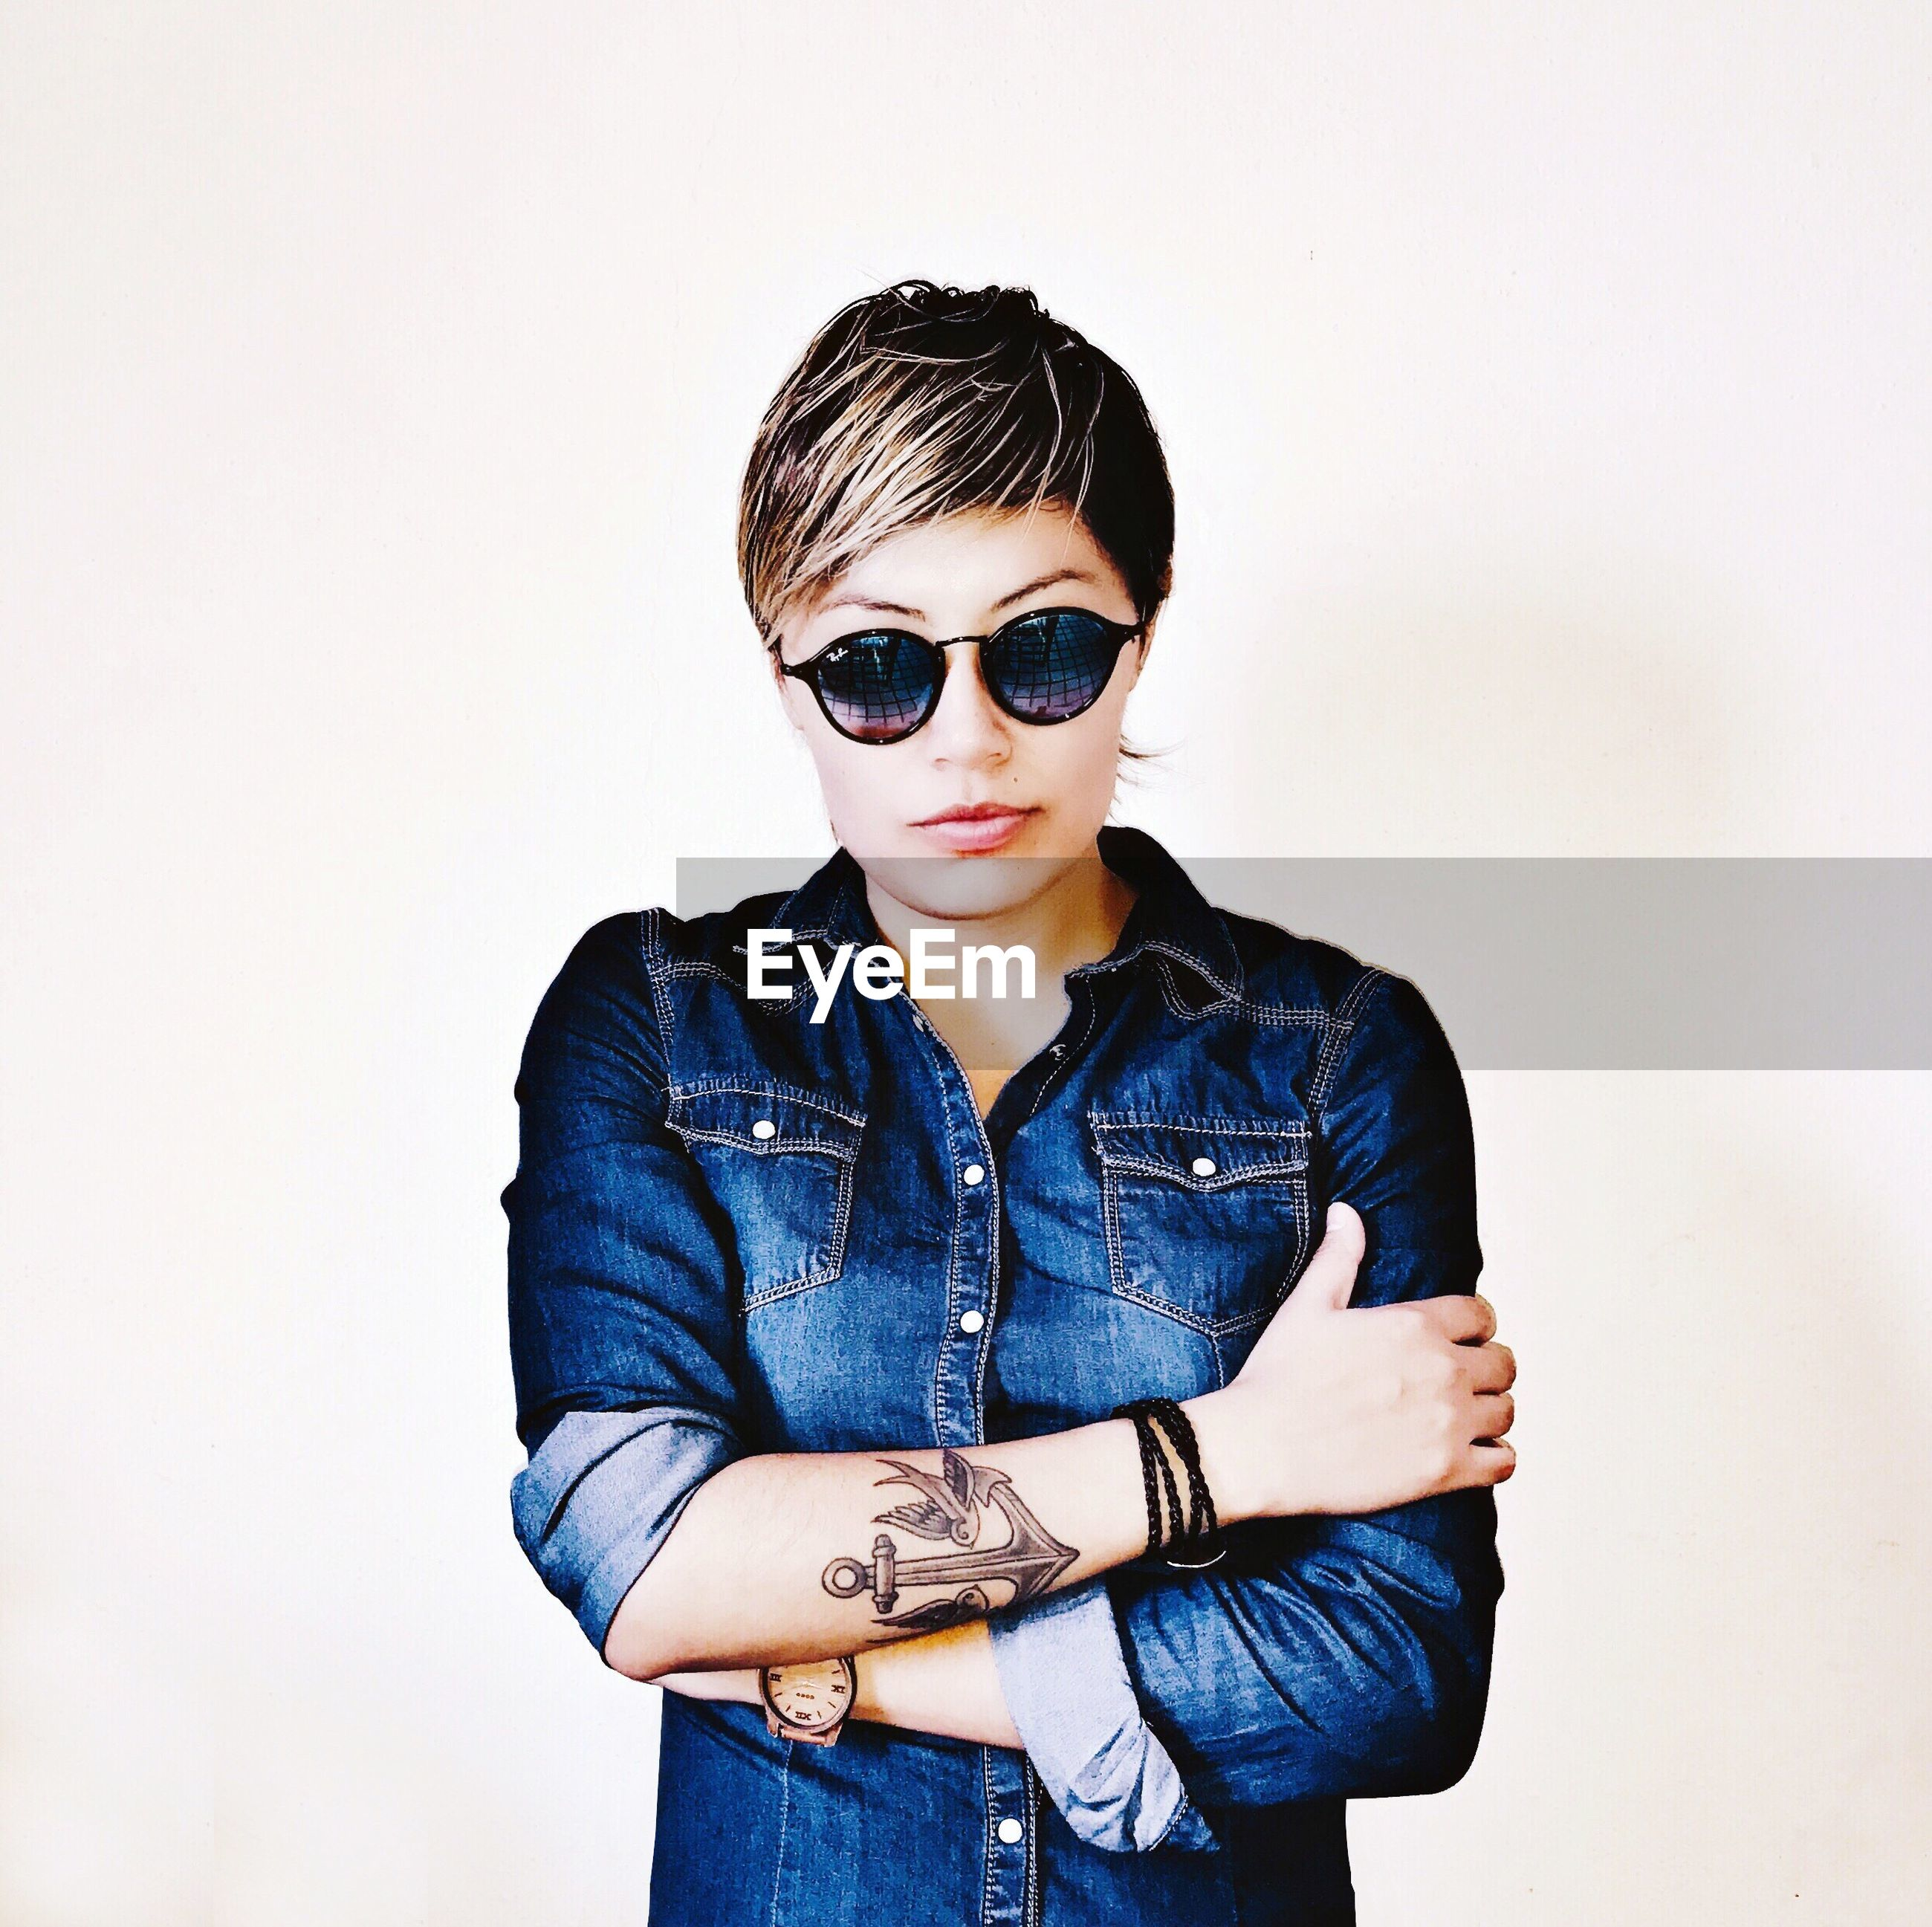 PORTRAIT OF BEAUTIFUL YOUNG WOMAN WEARING SUNGLASSES AGAINST WHITE BACKGROUND